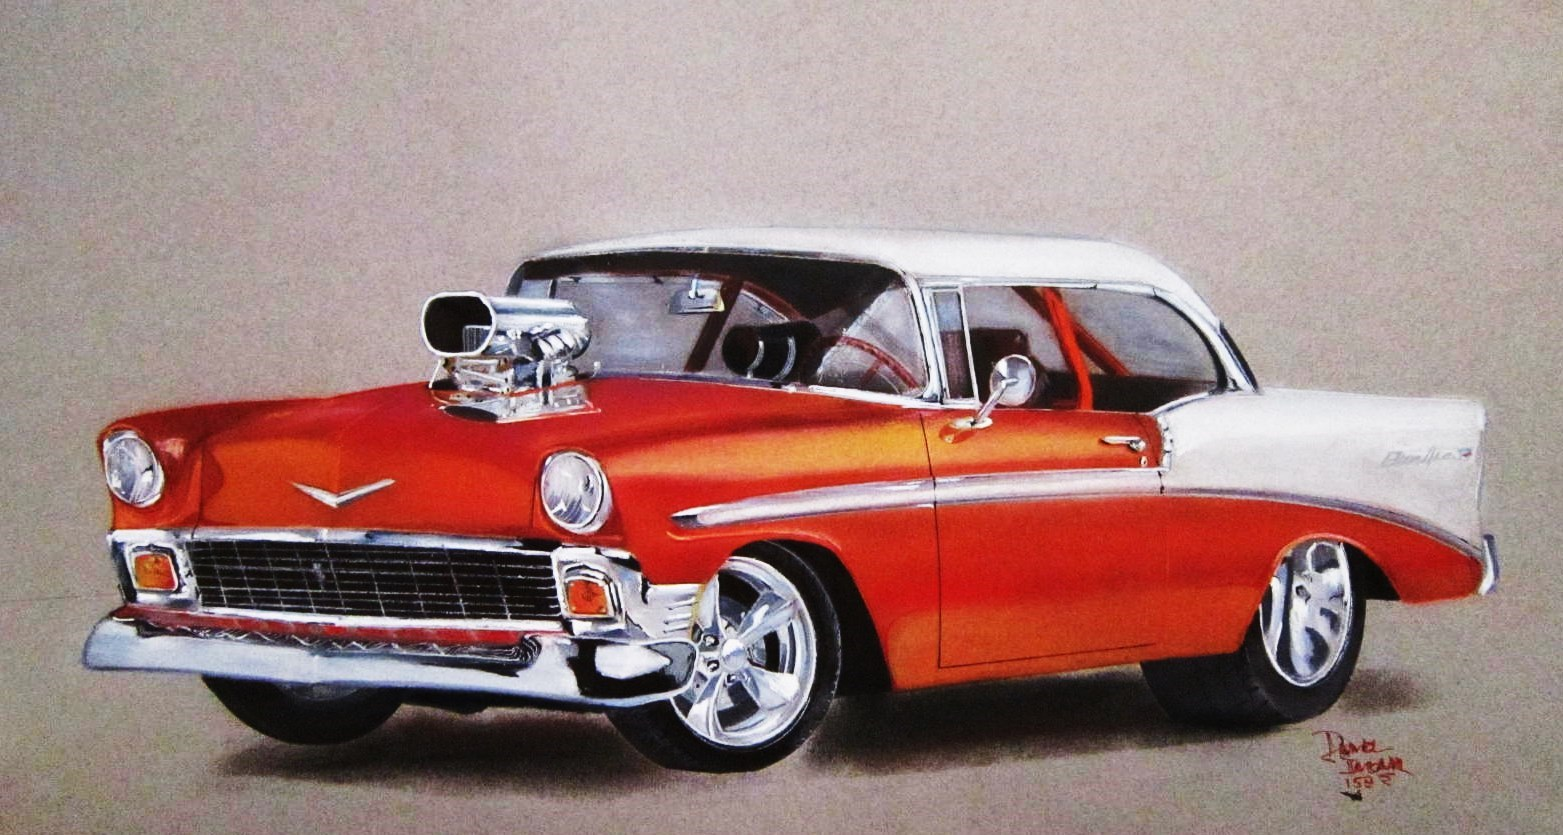 Click image for larger version  Name:56 Chevy no2.JPG Views:170 Size:289.9 KB ID:202794